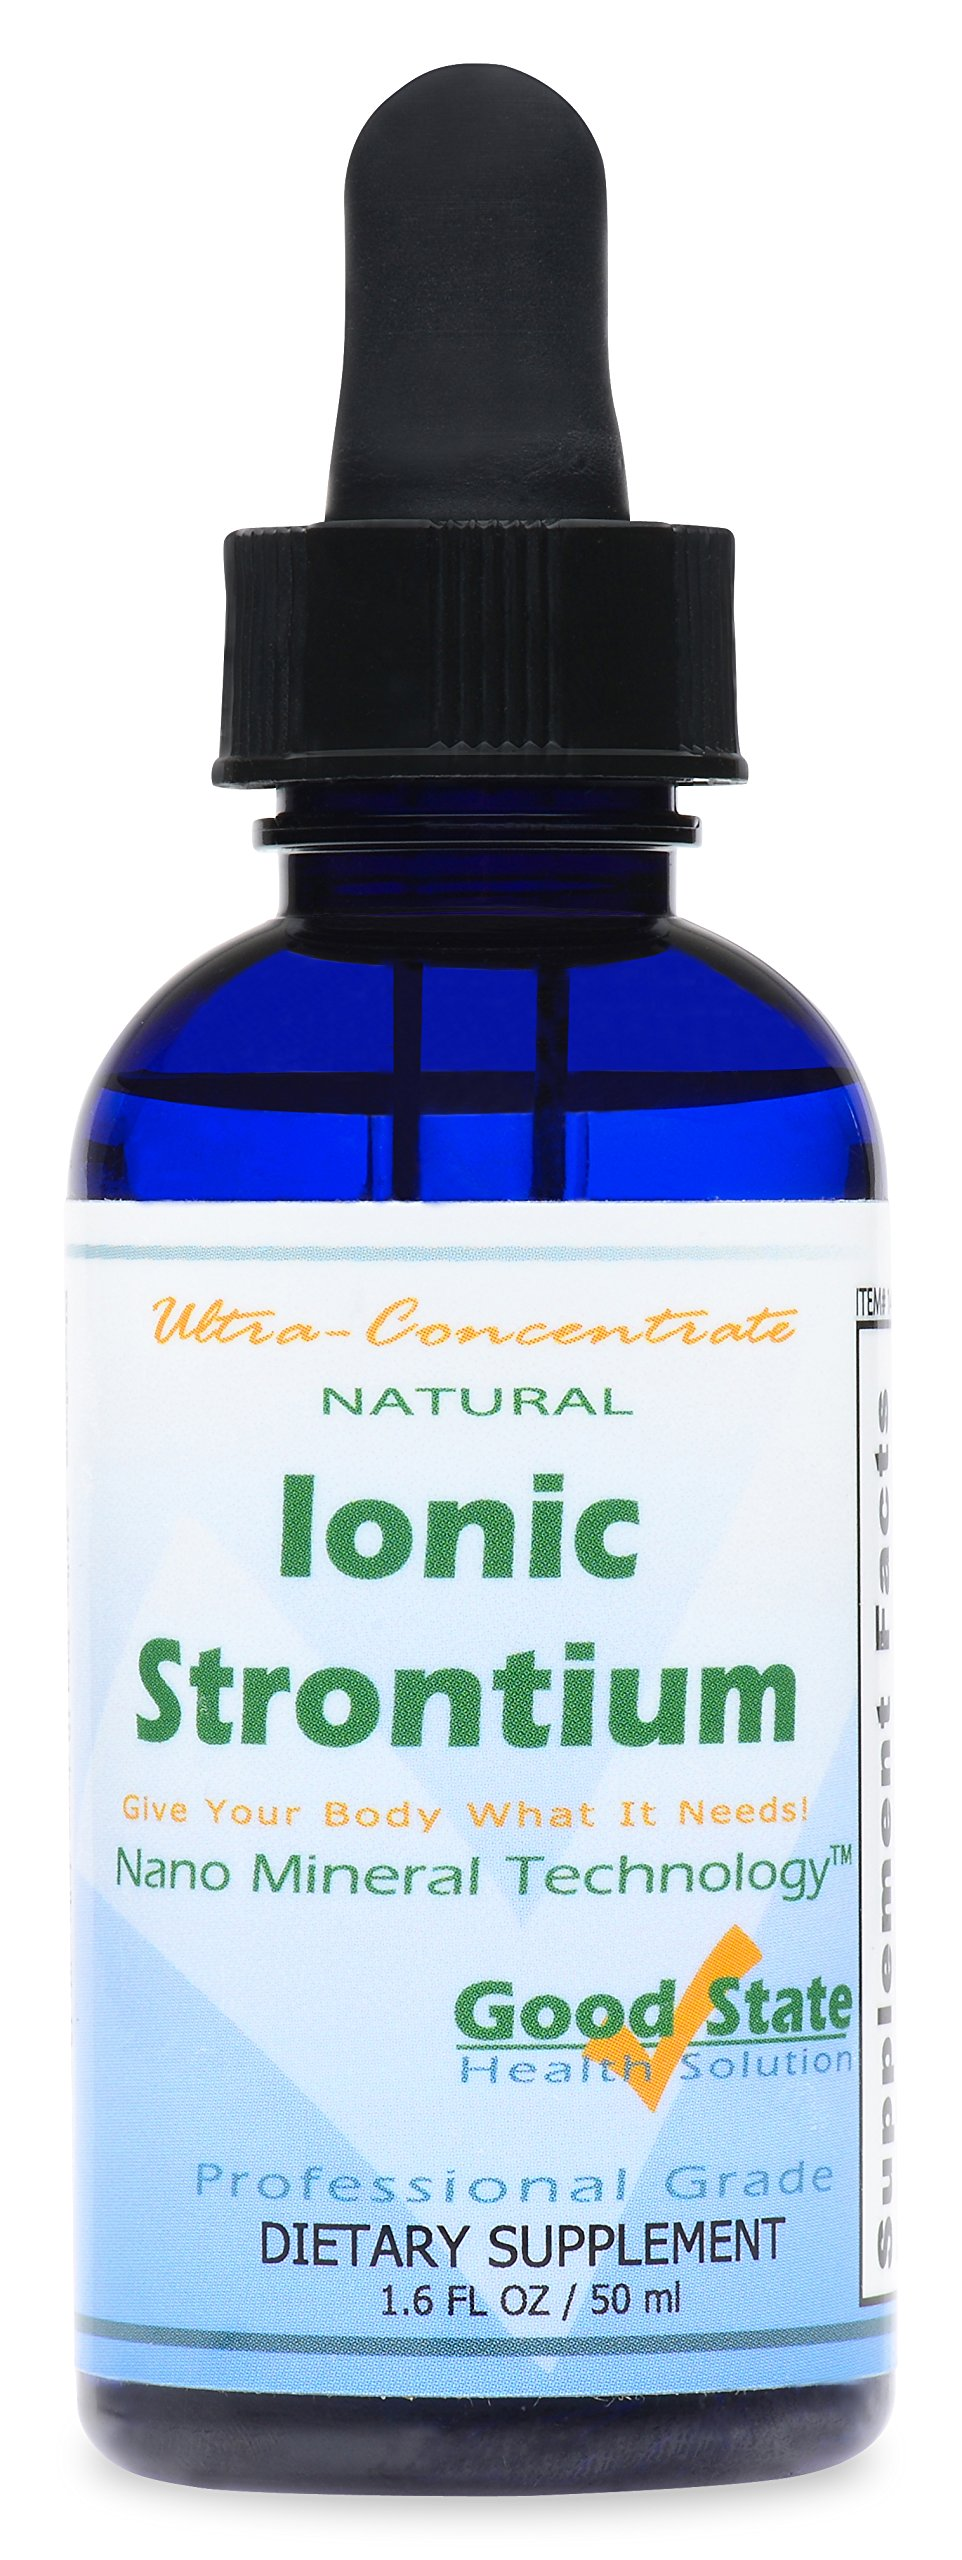 Good State Liquid Ionic Strontium Ultra Concentrate (10 drops equals 30 mg - 100 servings per bottle)